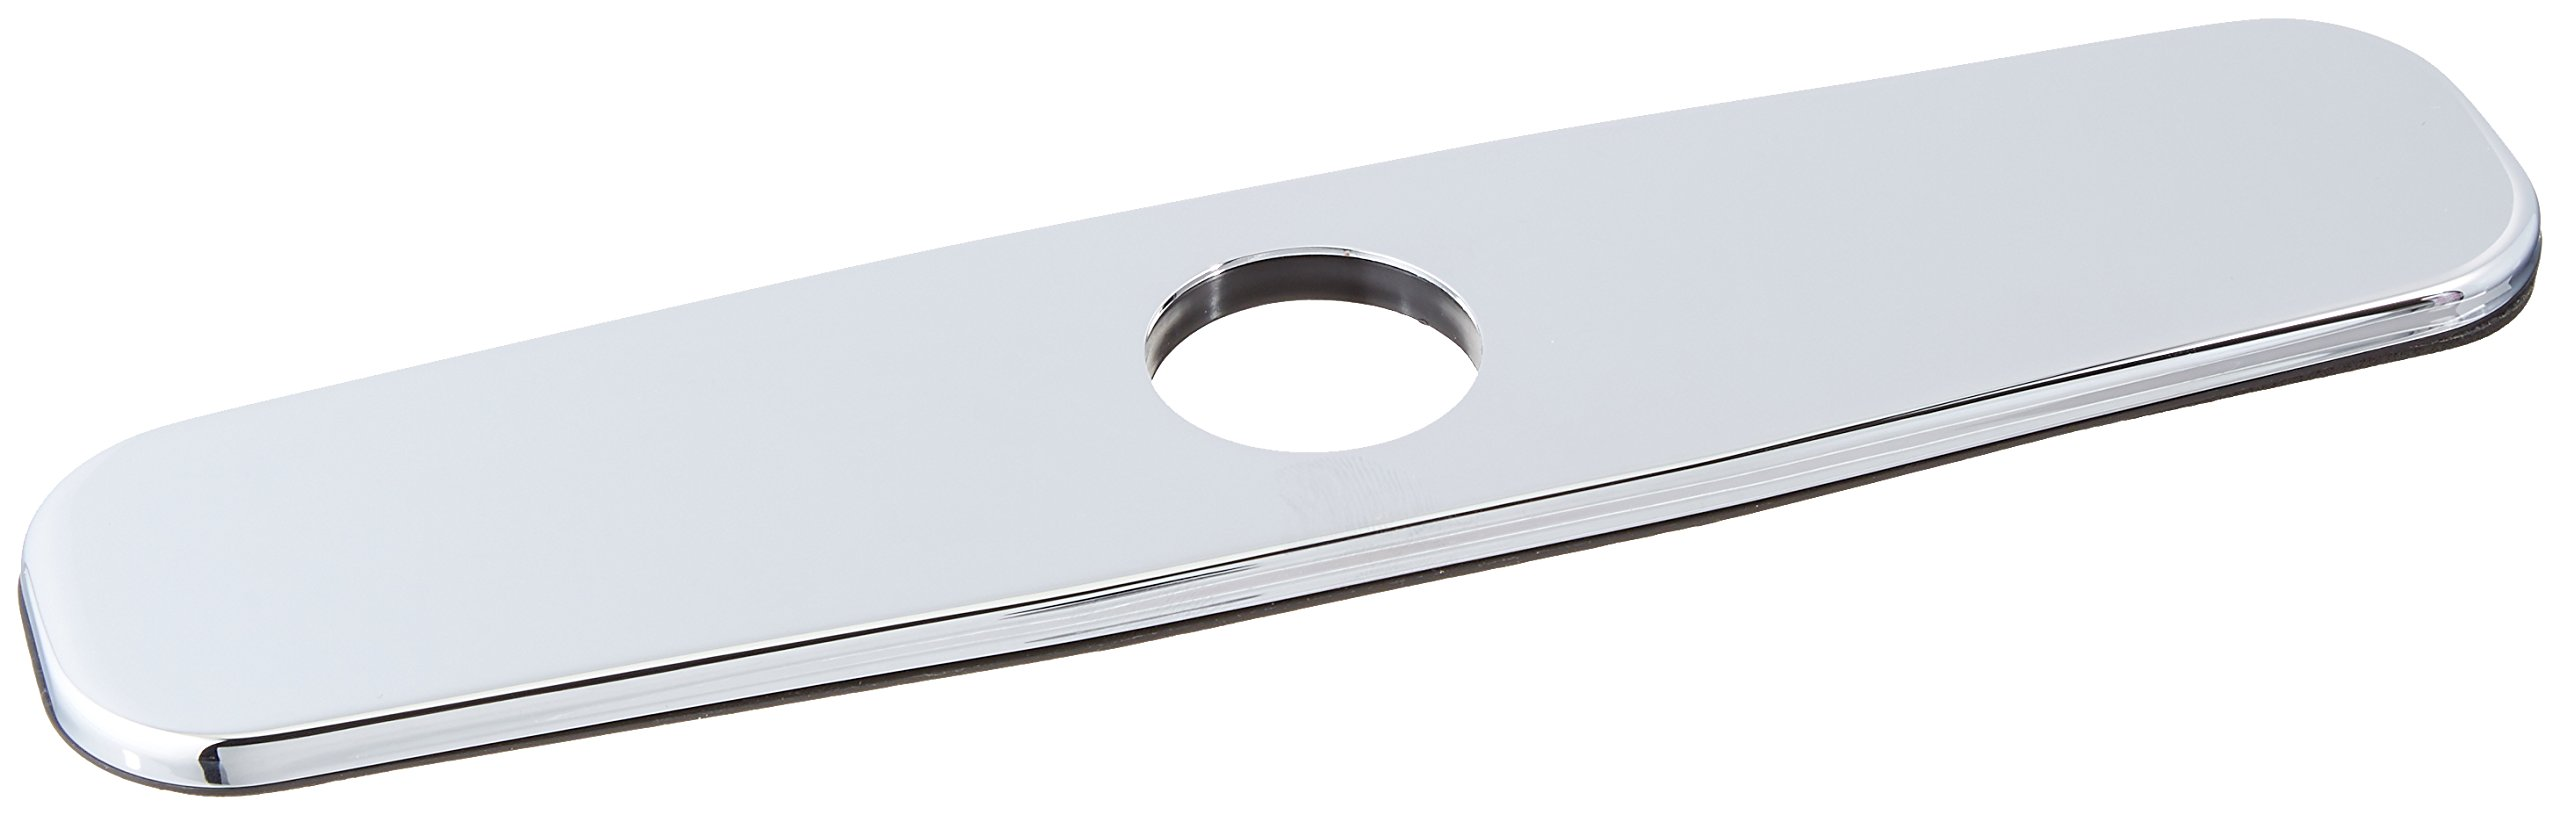 Danze DA665051 Kitchen Faucet Single Hole Mount Cover Plate, 8-Inch, Chrome